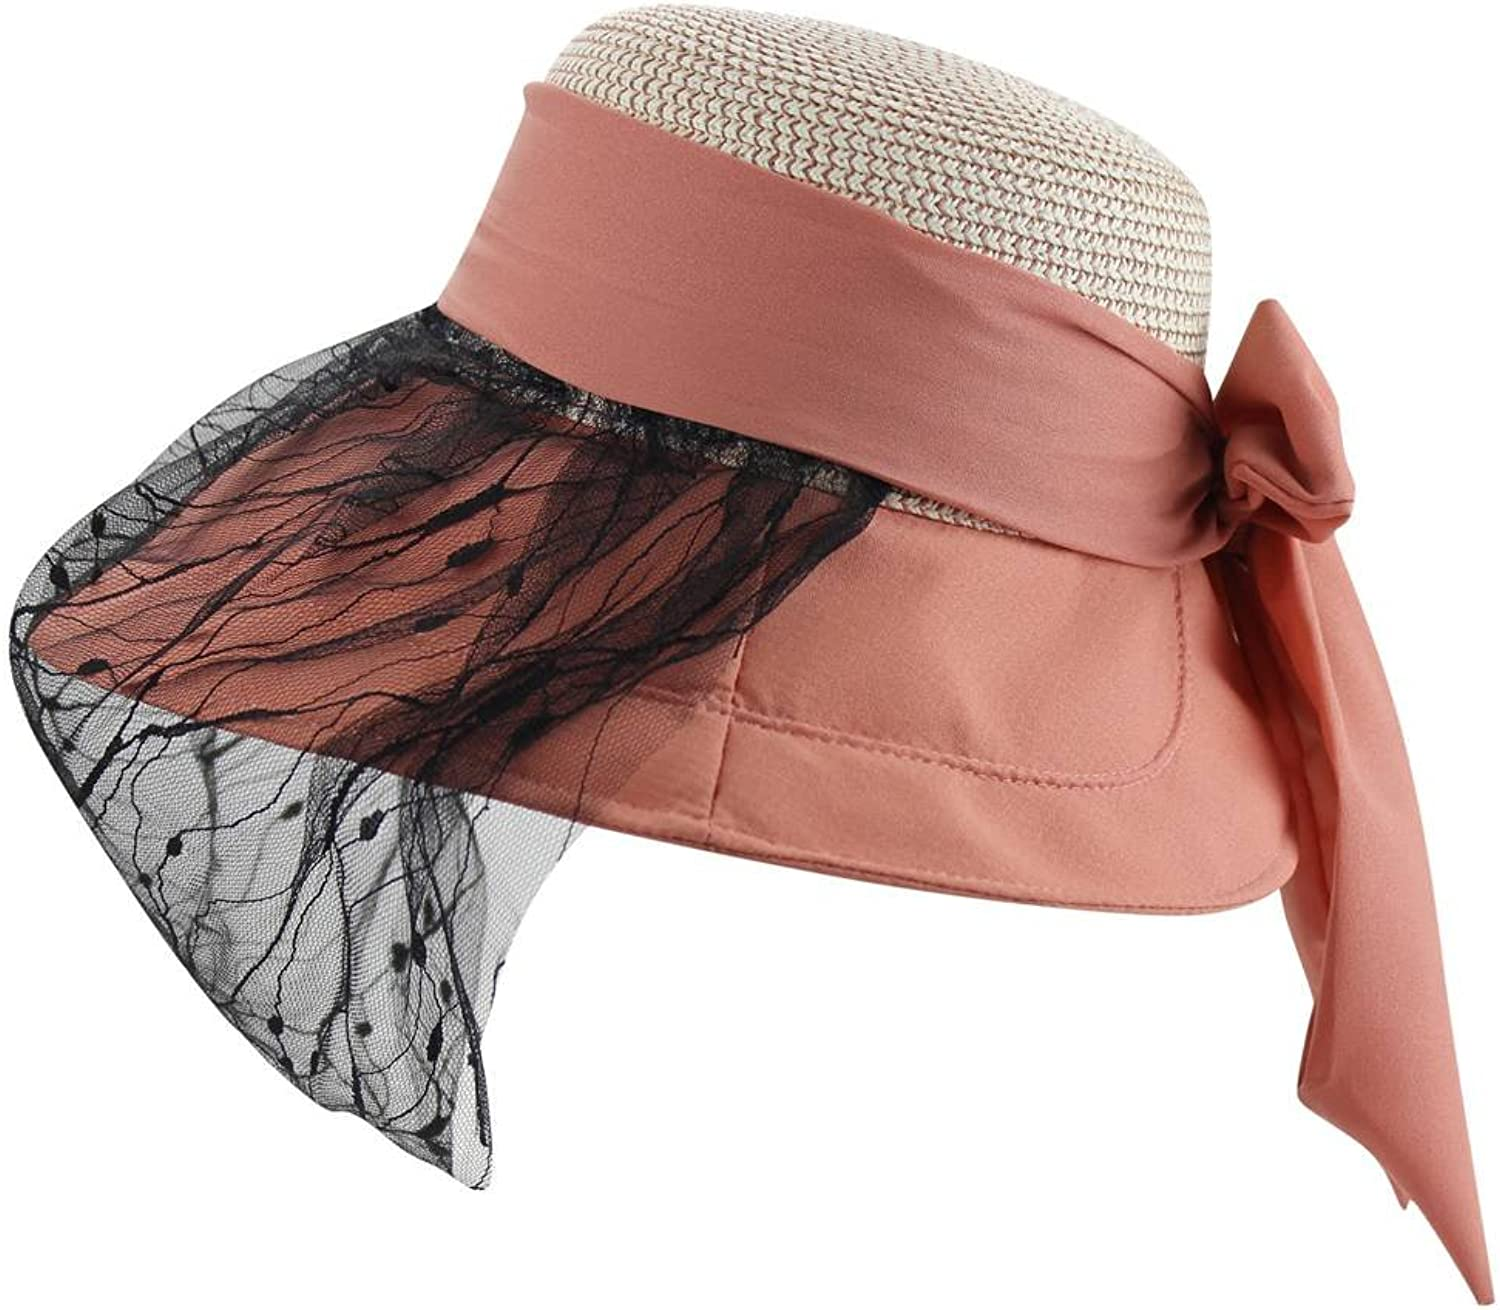 EYourlife2012 Womens Summer Beach Lace Face Mask Floppy Wide Brim Bowknot Straw Sun UV Hat Cap